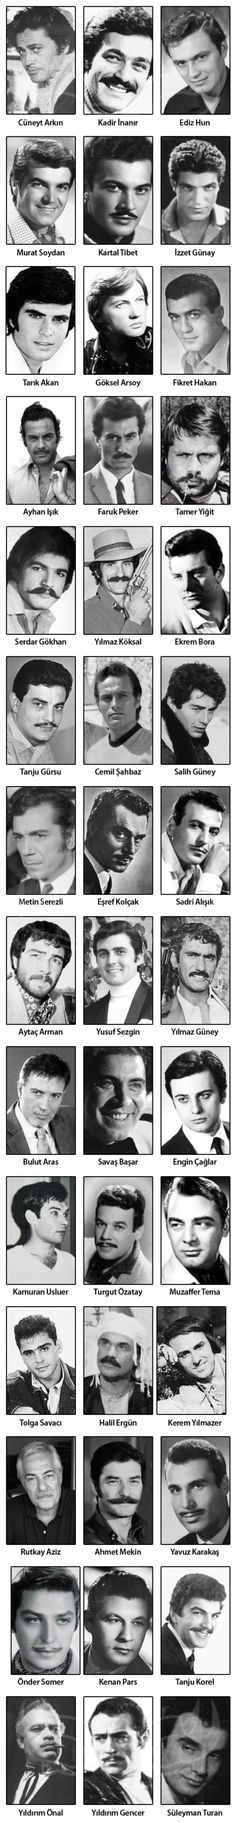 Turkish cinema actors from Cinema Film, Cinema Movies, Hair Color For Brown Skin, Star Wars, Historical Pictures, Old Movies, Color Photography, Music Artists, Old Photos